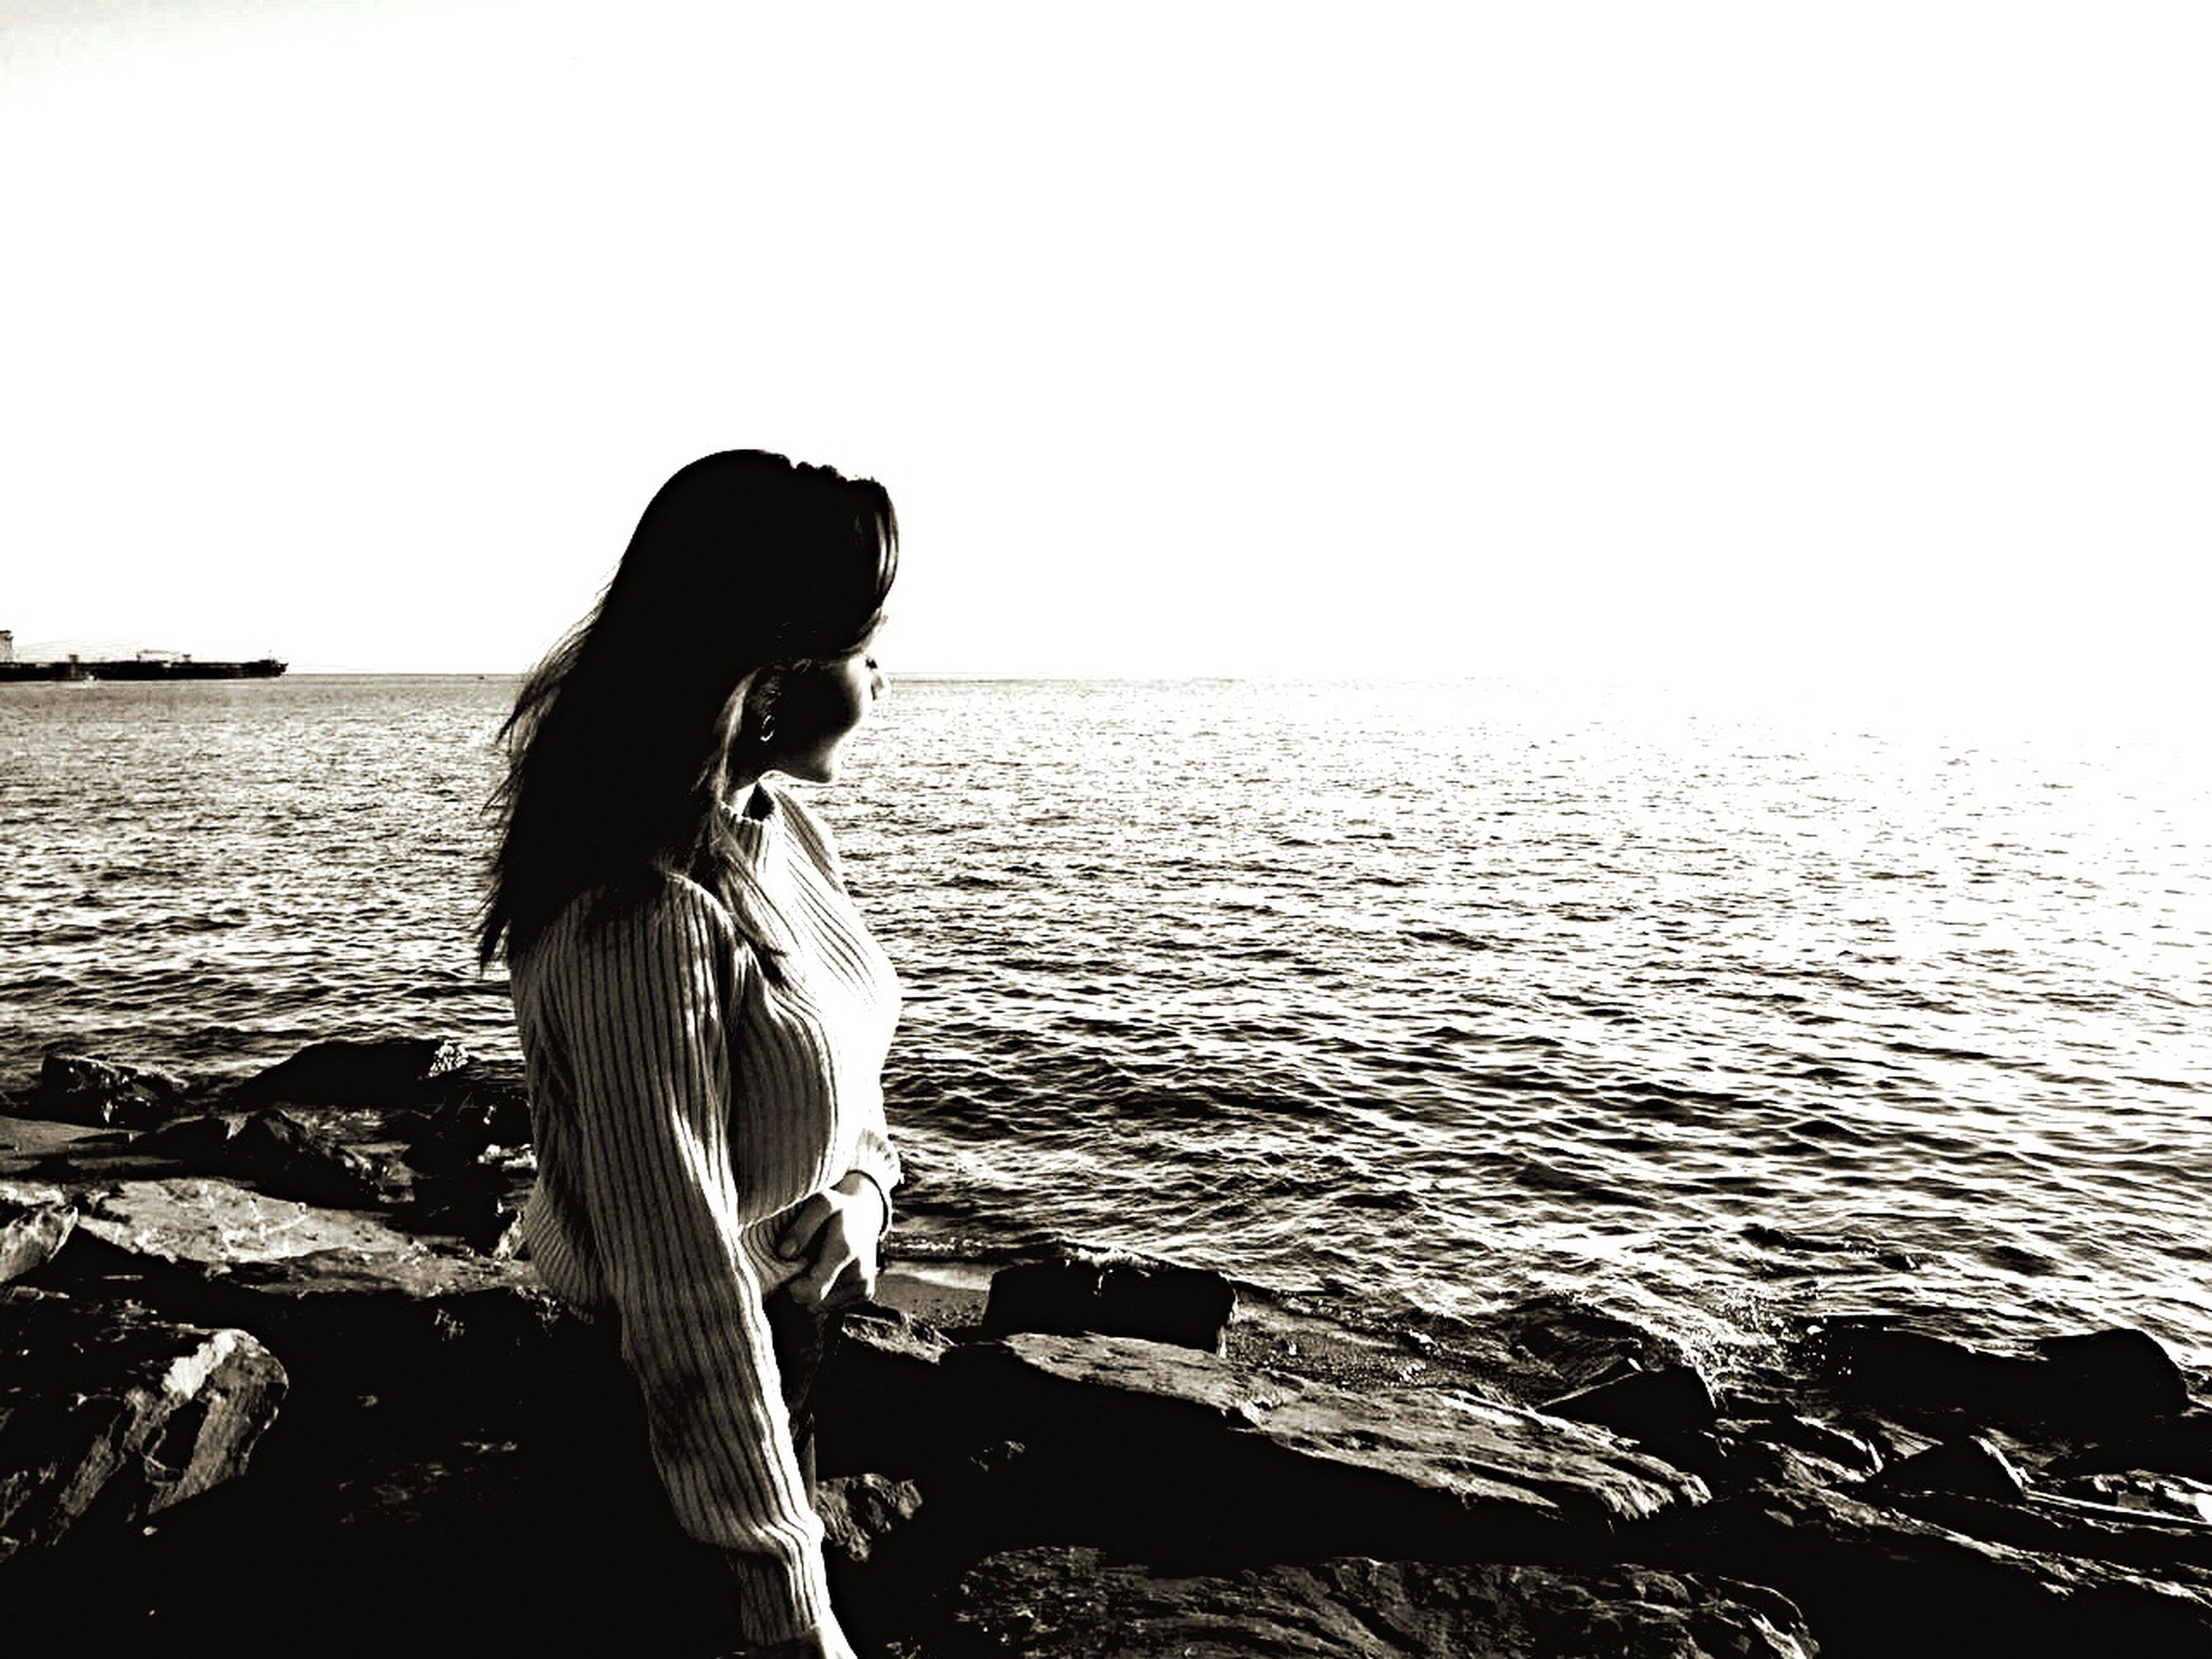 sea, one person, one woman only, horizon over water, only women, lifestyles, clear sky, beach, adults only, adult, standing, people, silhouette, water, real people, vacations, outdoors, day, one young woman only, beauty in nature, nature, sky, young adult, animal themes